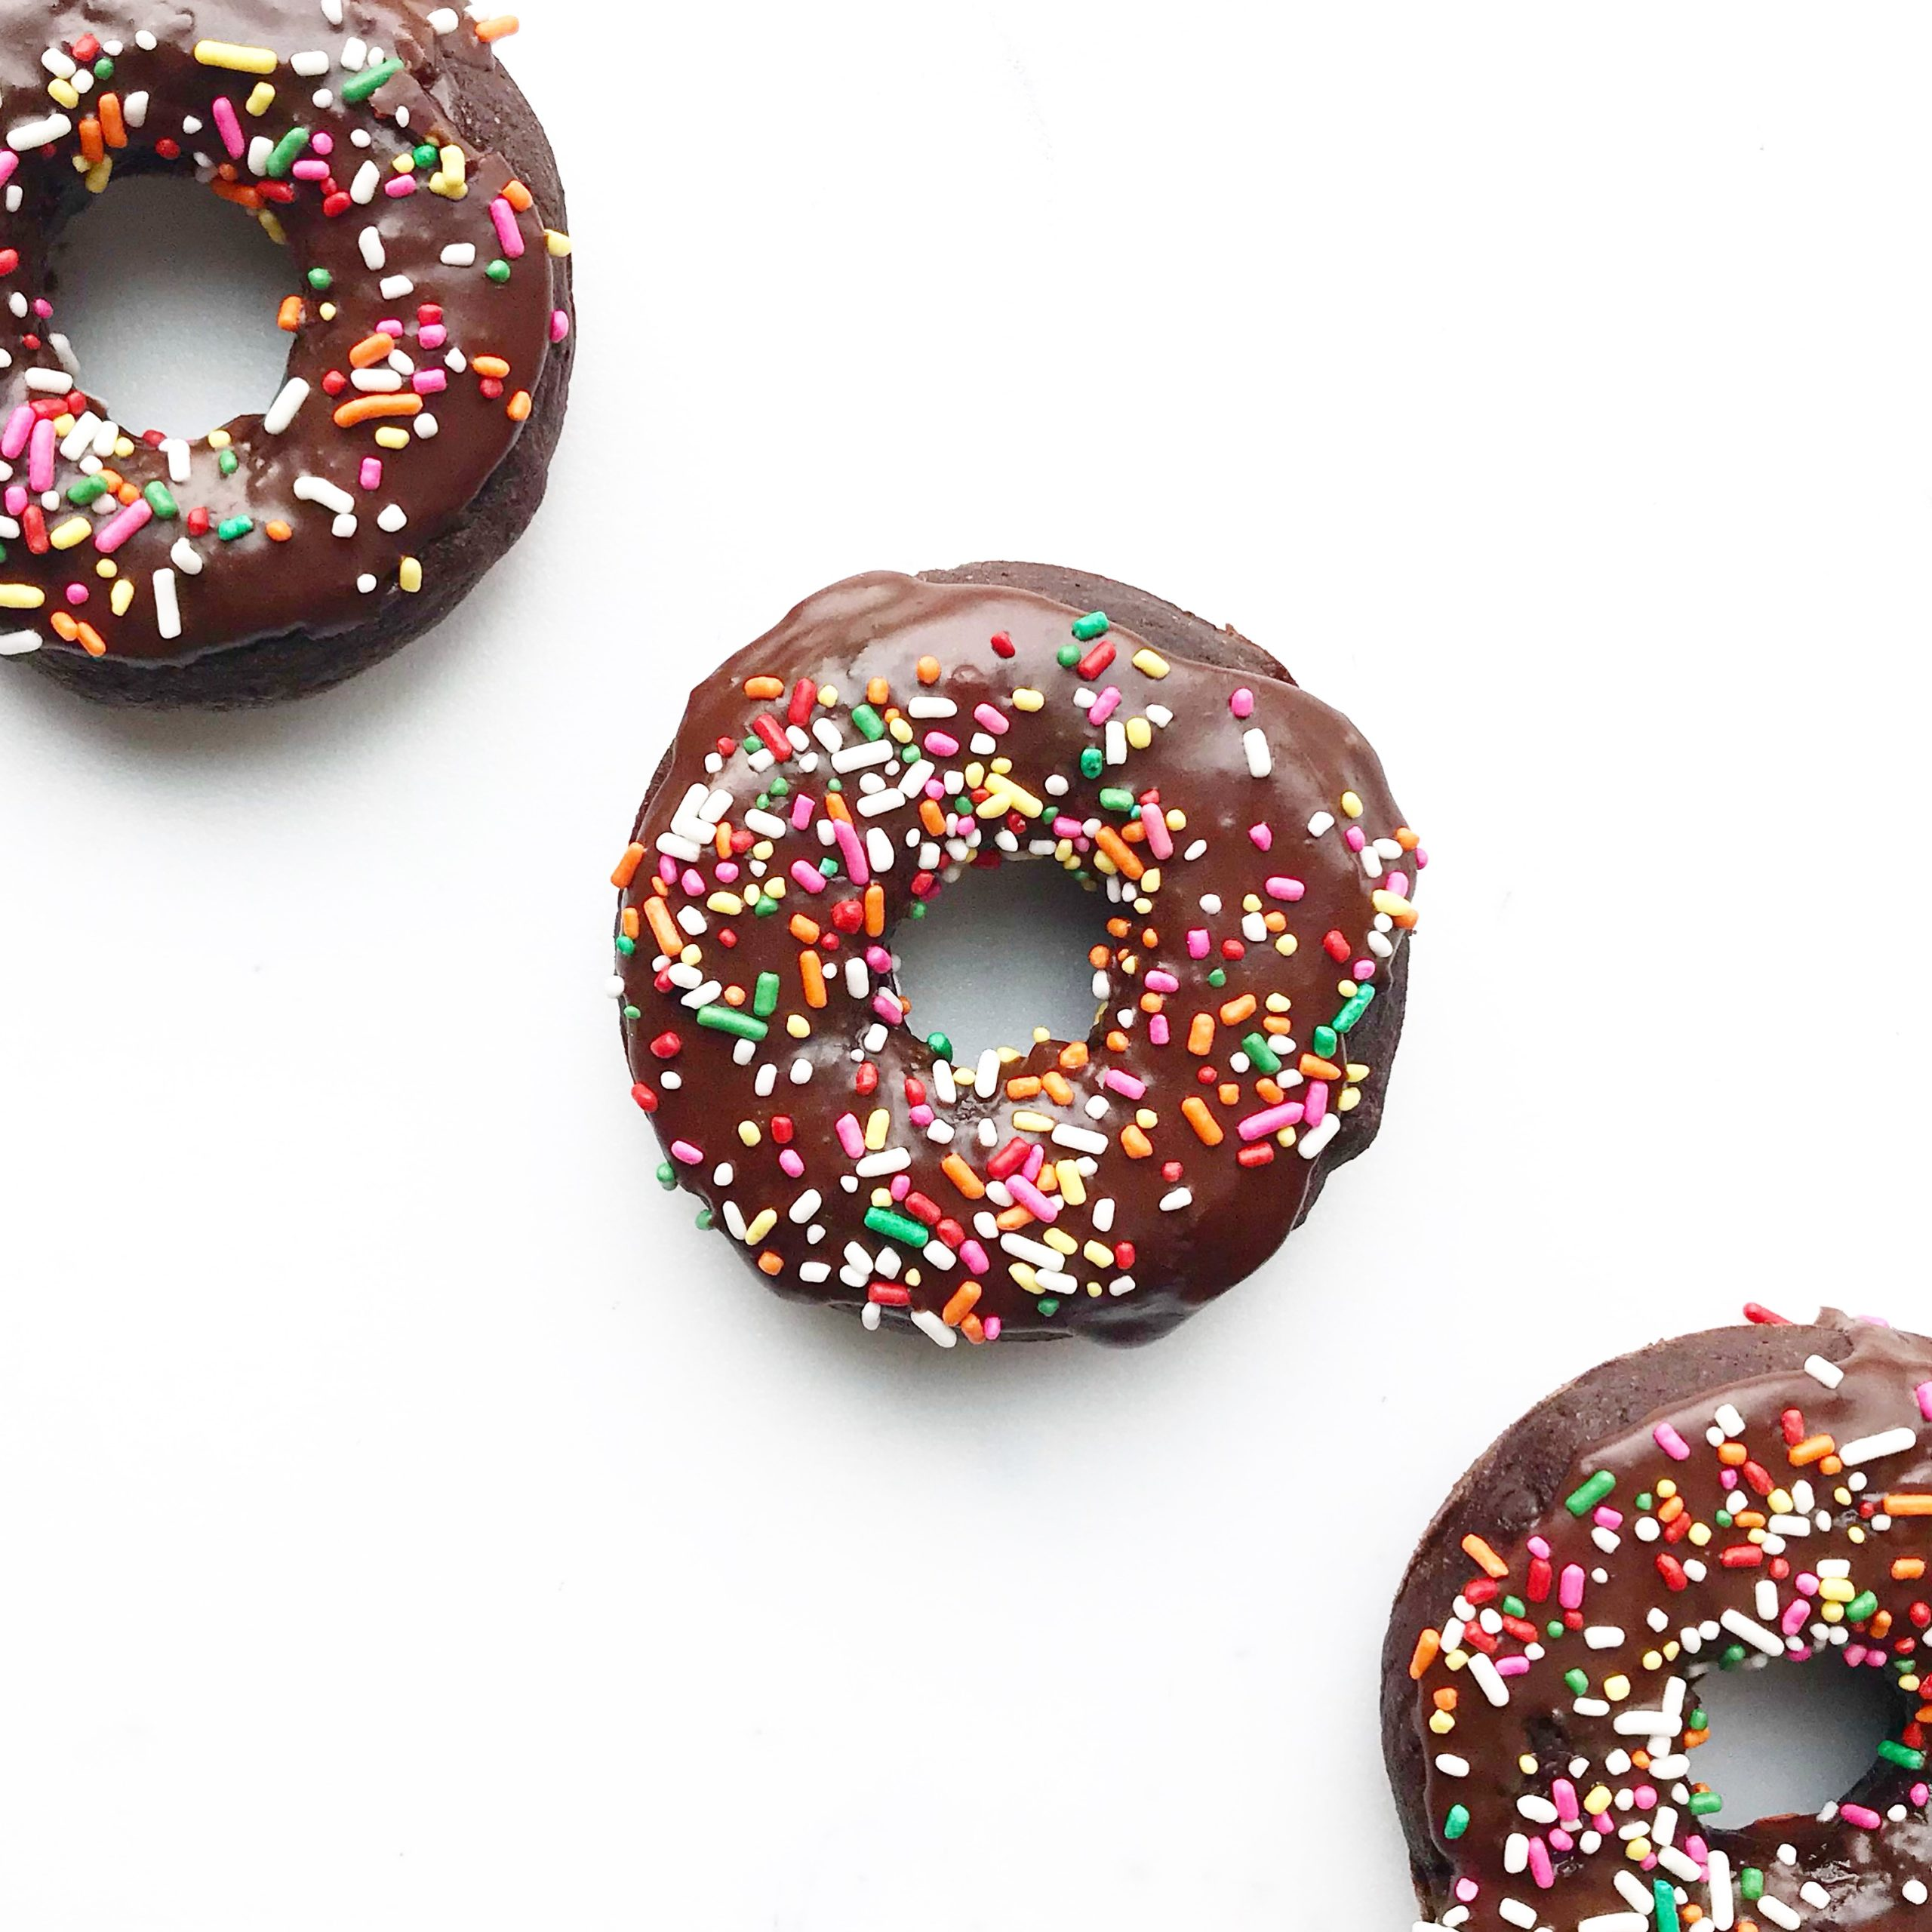 rainbow sprinkle baked chocolate donuts